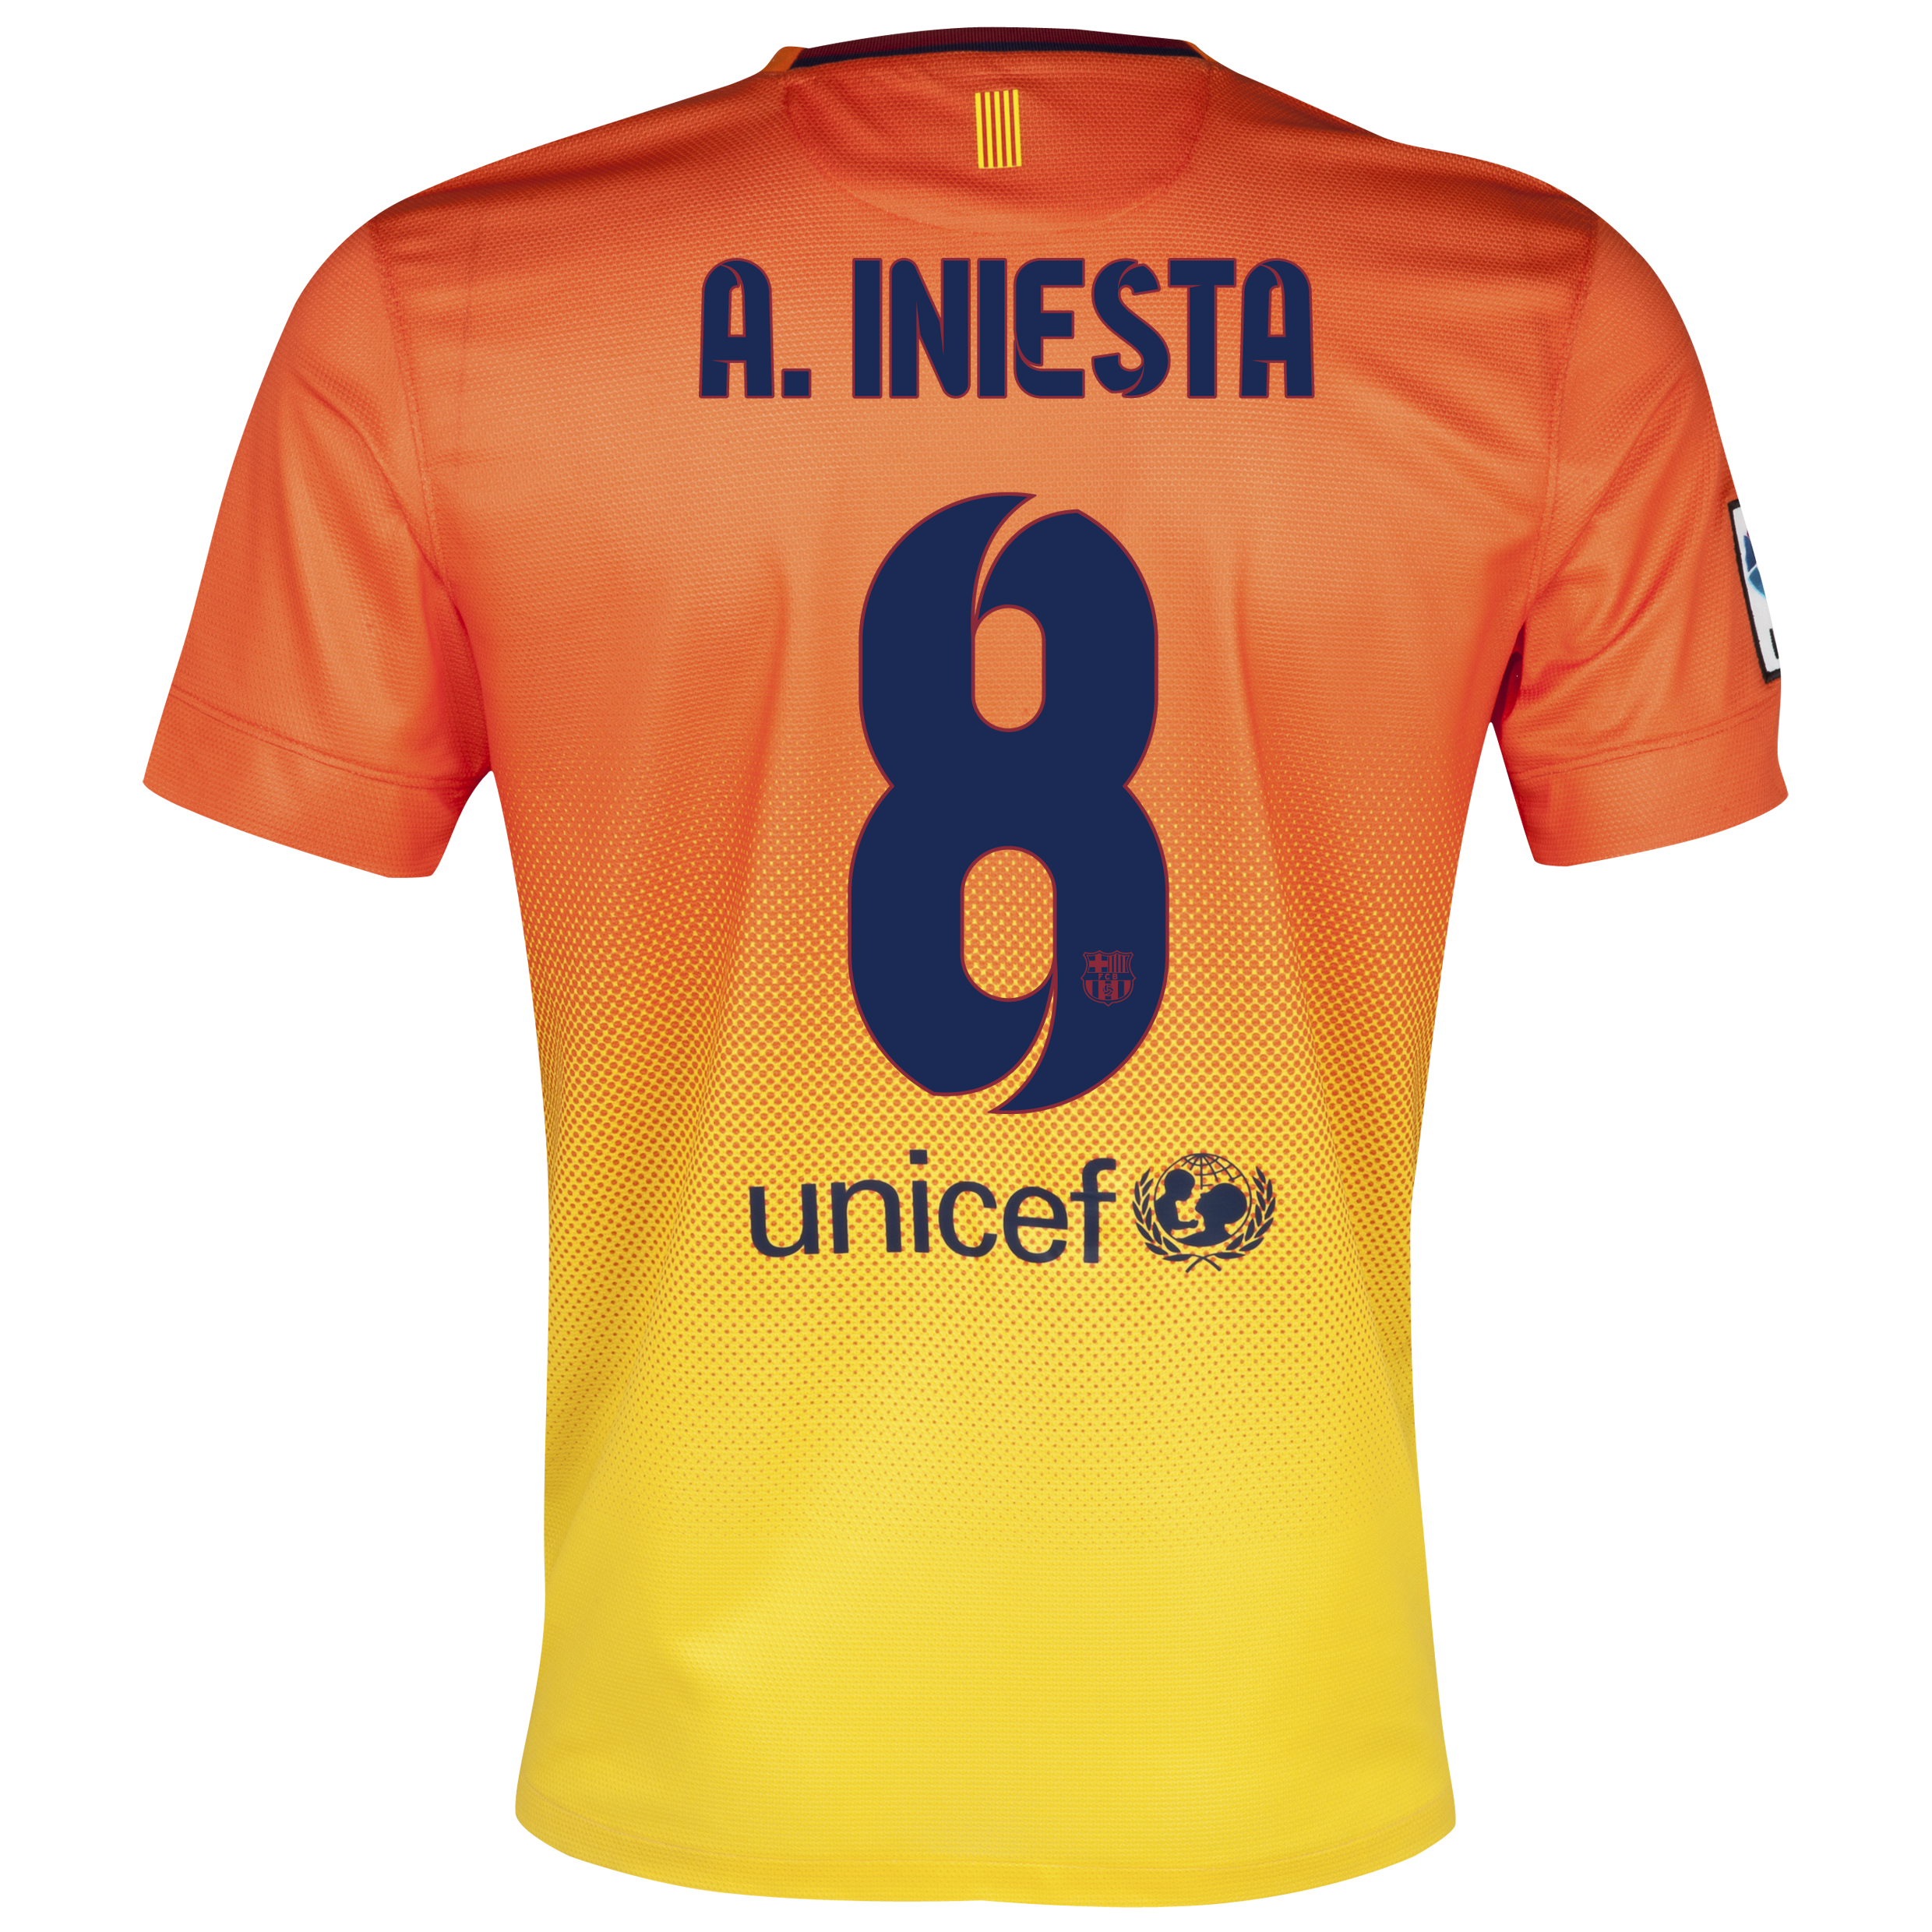 Barcelona Away Shirt 2012/13 with A. Iniesta  8 printing